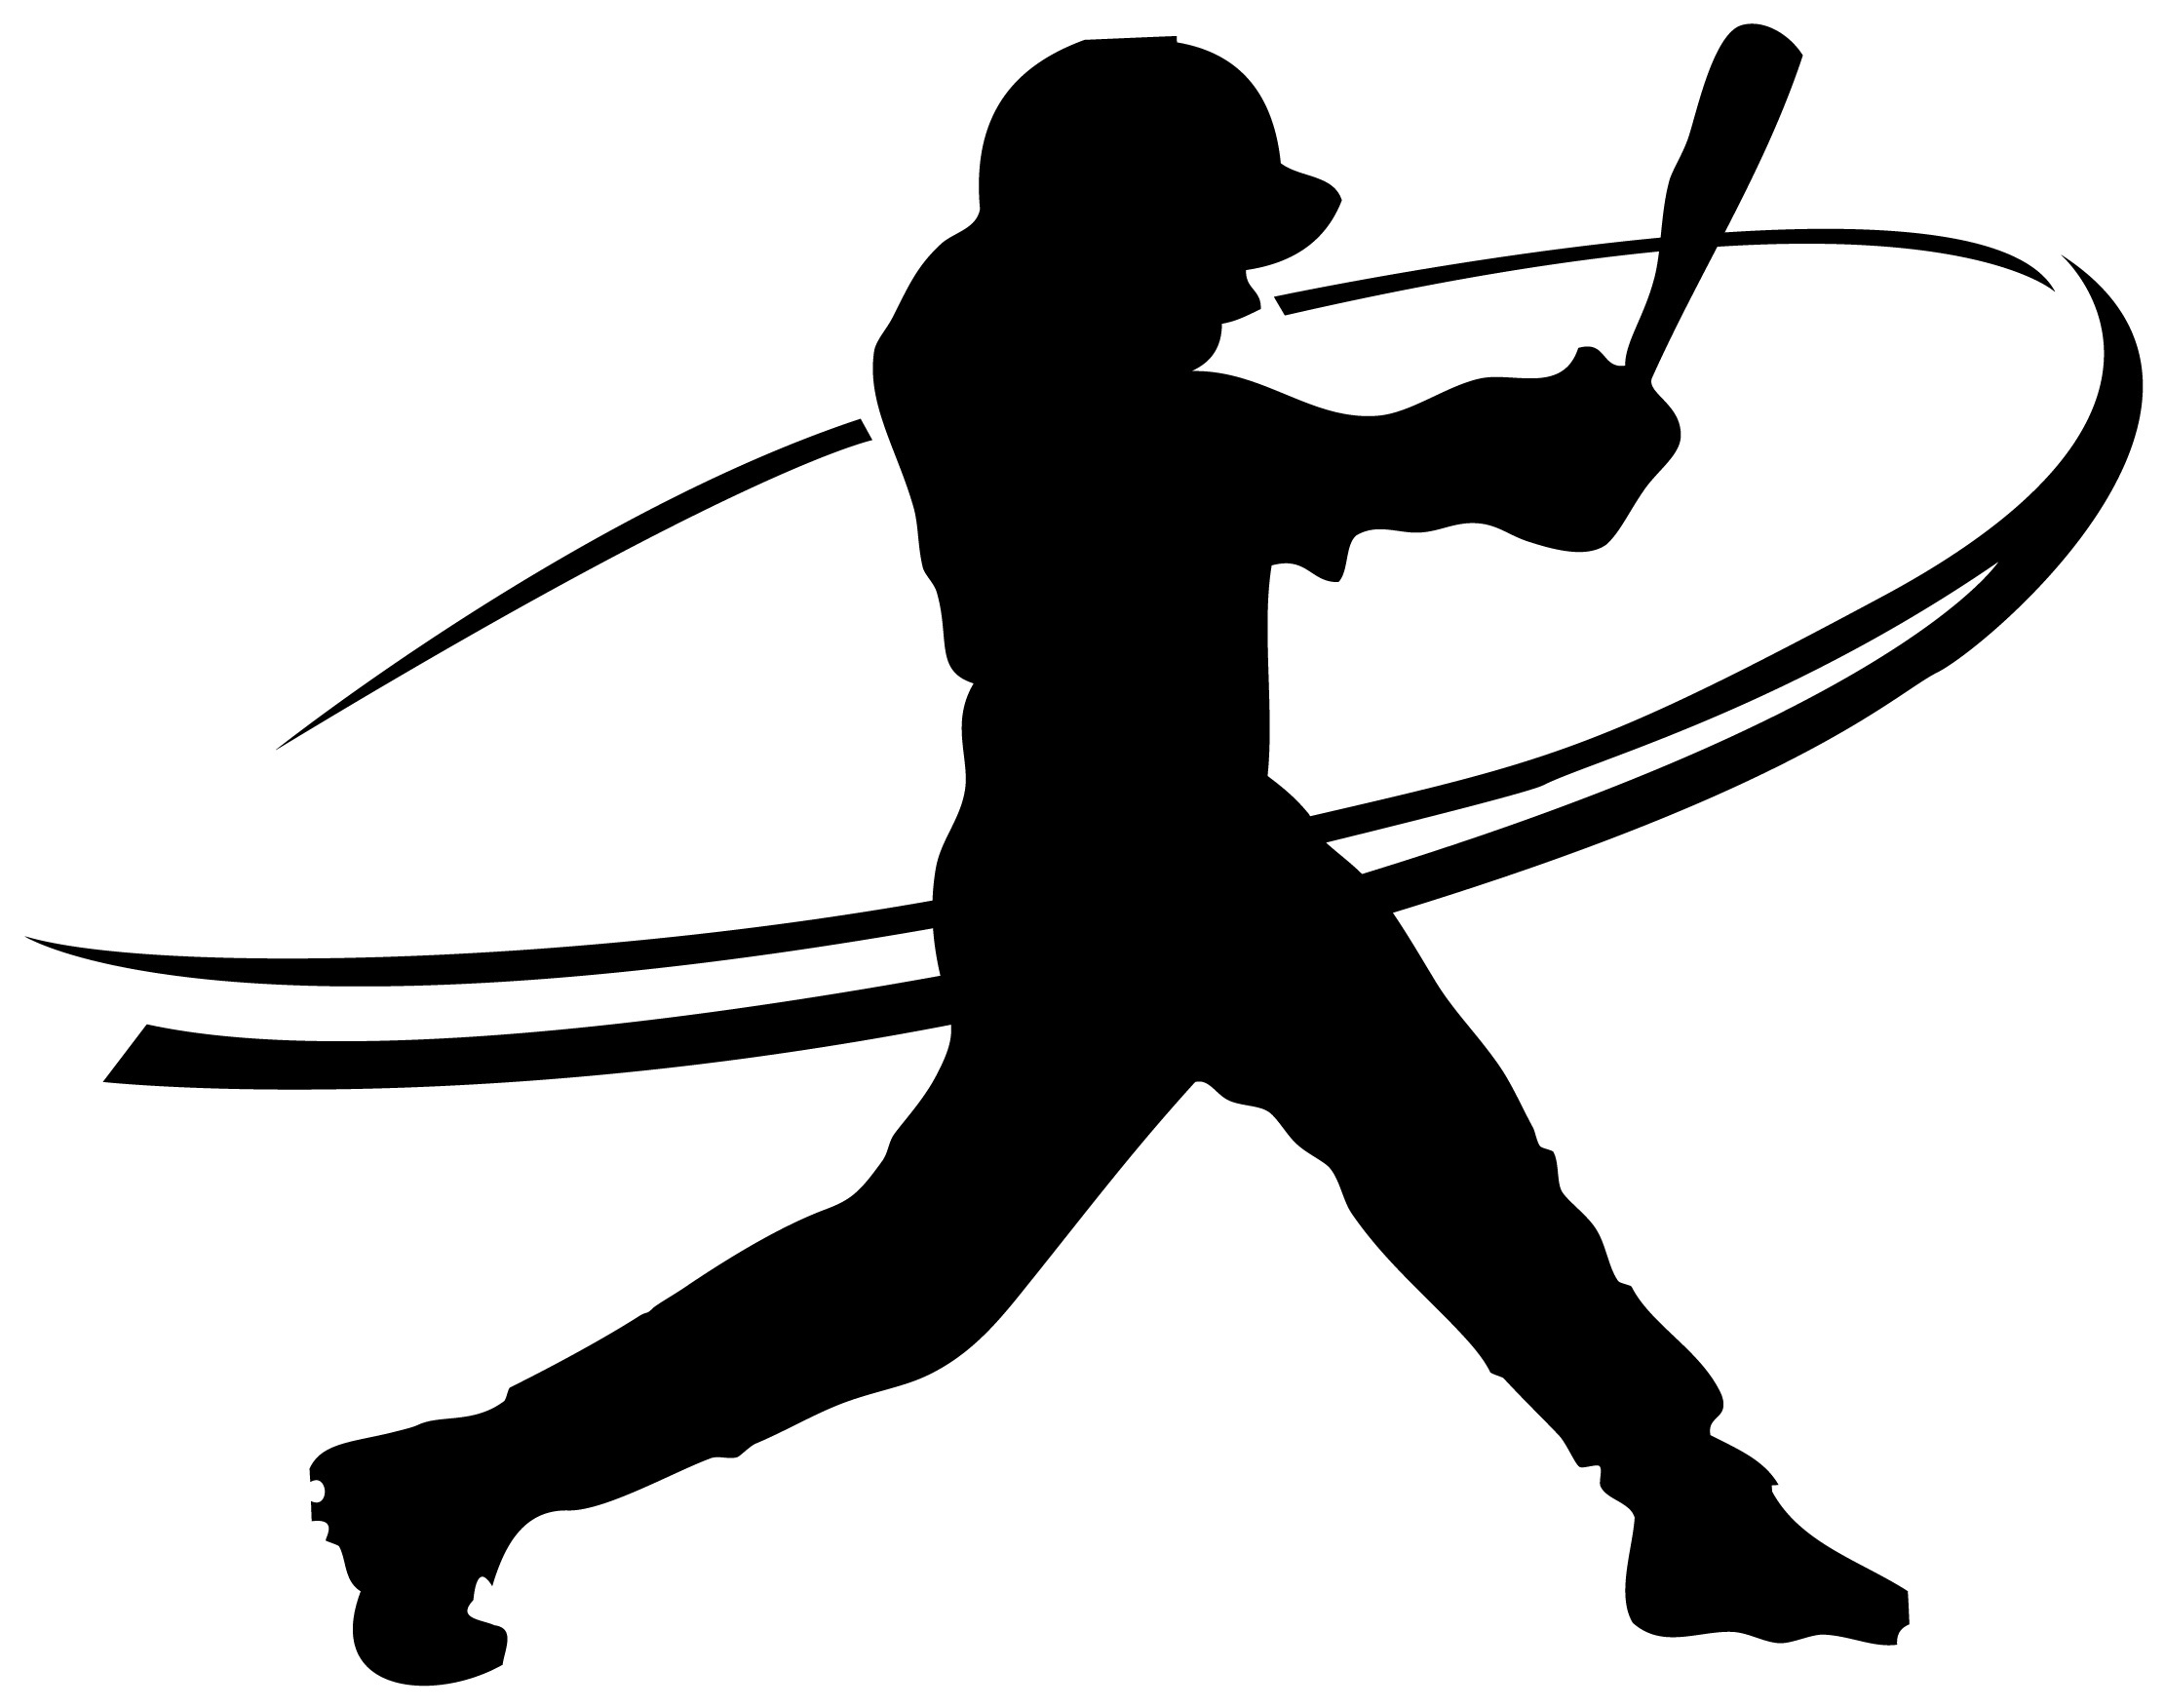 Free Free Softball Images, Download Free Clip Art, Free Clip Art On - Free Printable Softball Images